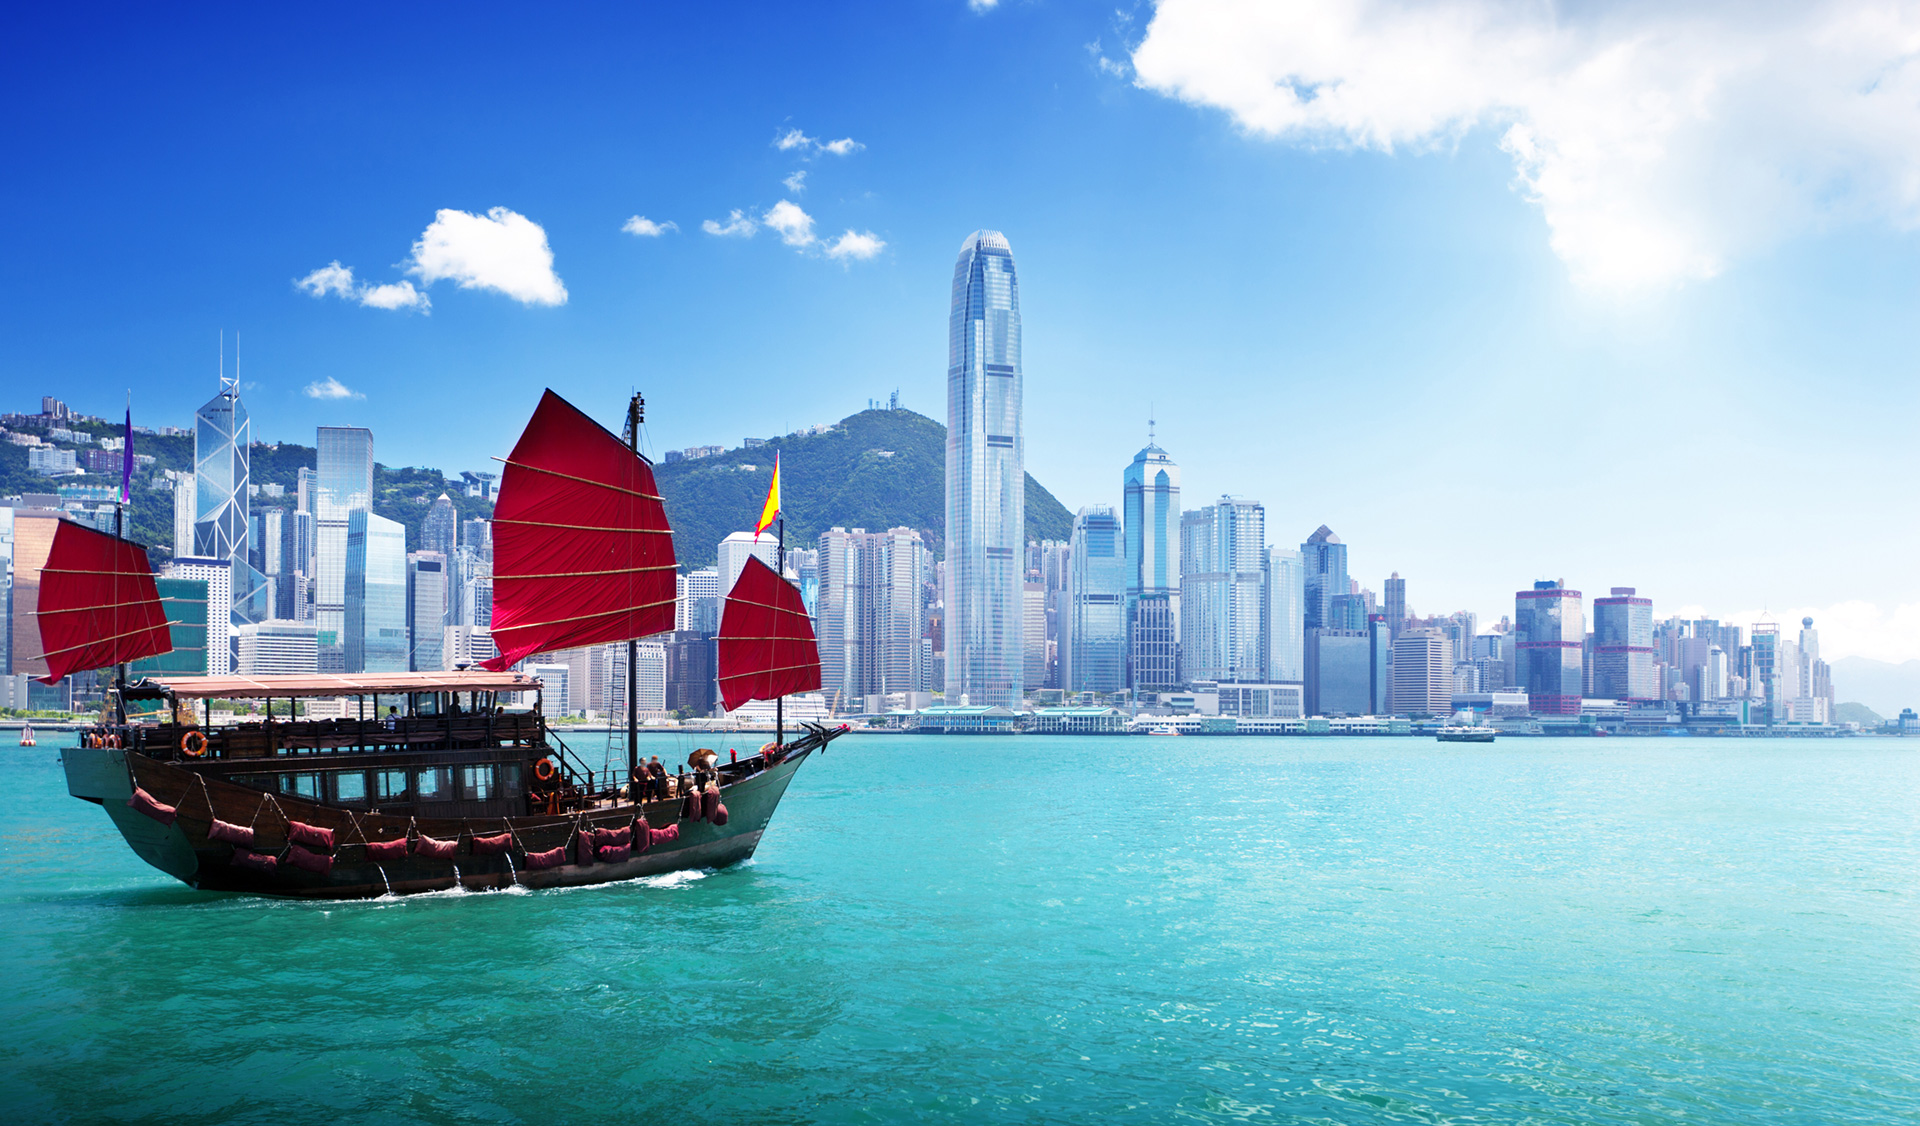 Image of Hong Kong skyline from the water with boat in the foreground